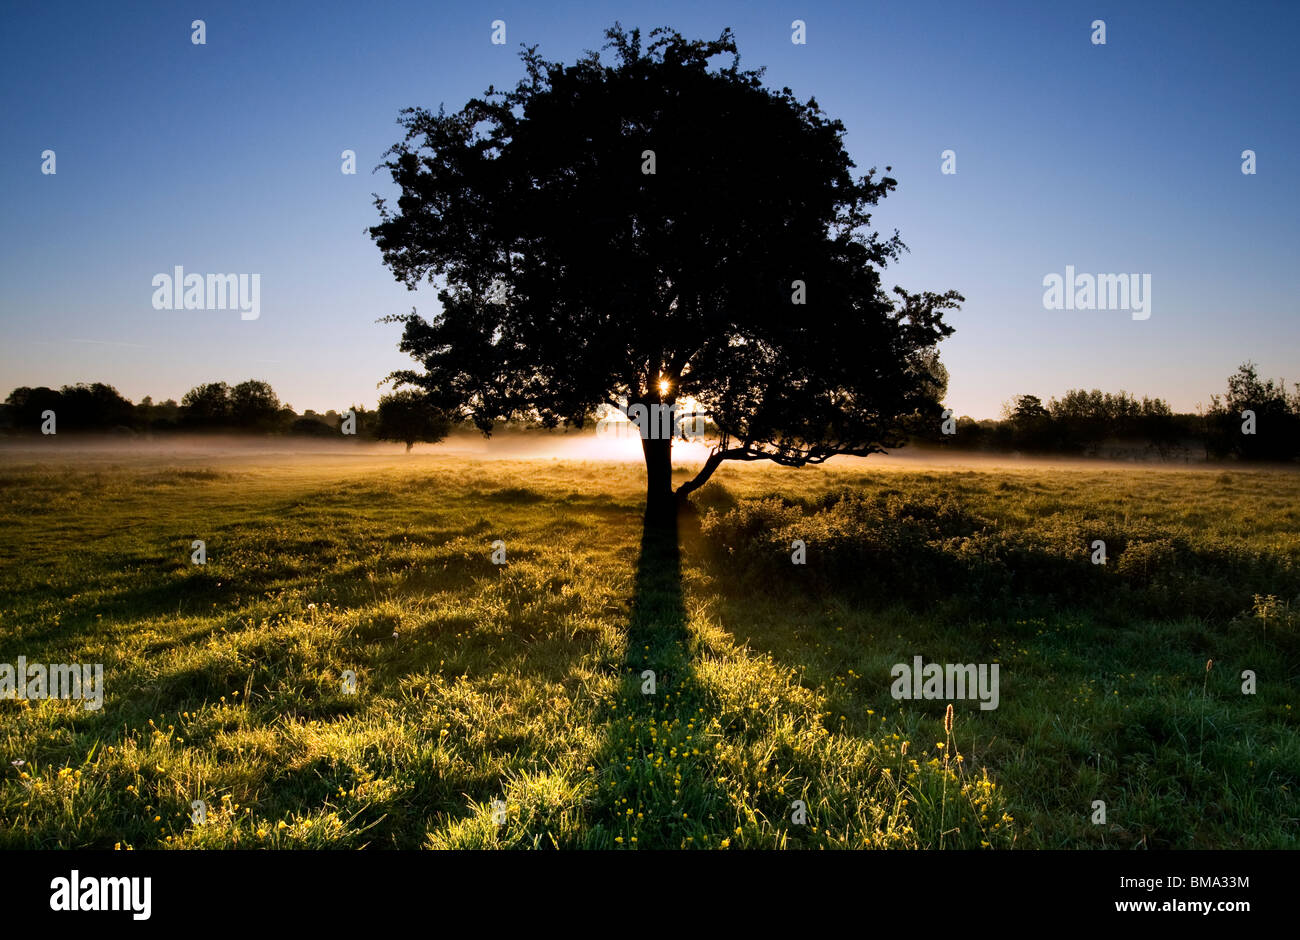 Cotswolds - Tree at dawn near Minster Lovell Hall - Stock Image